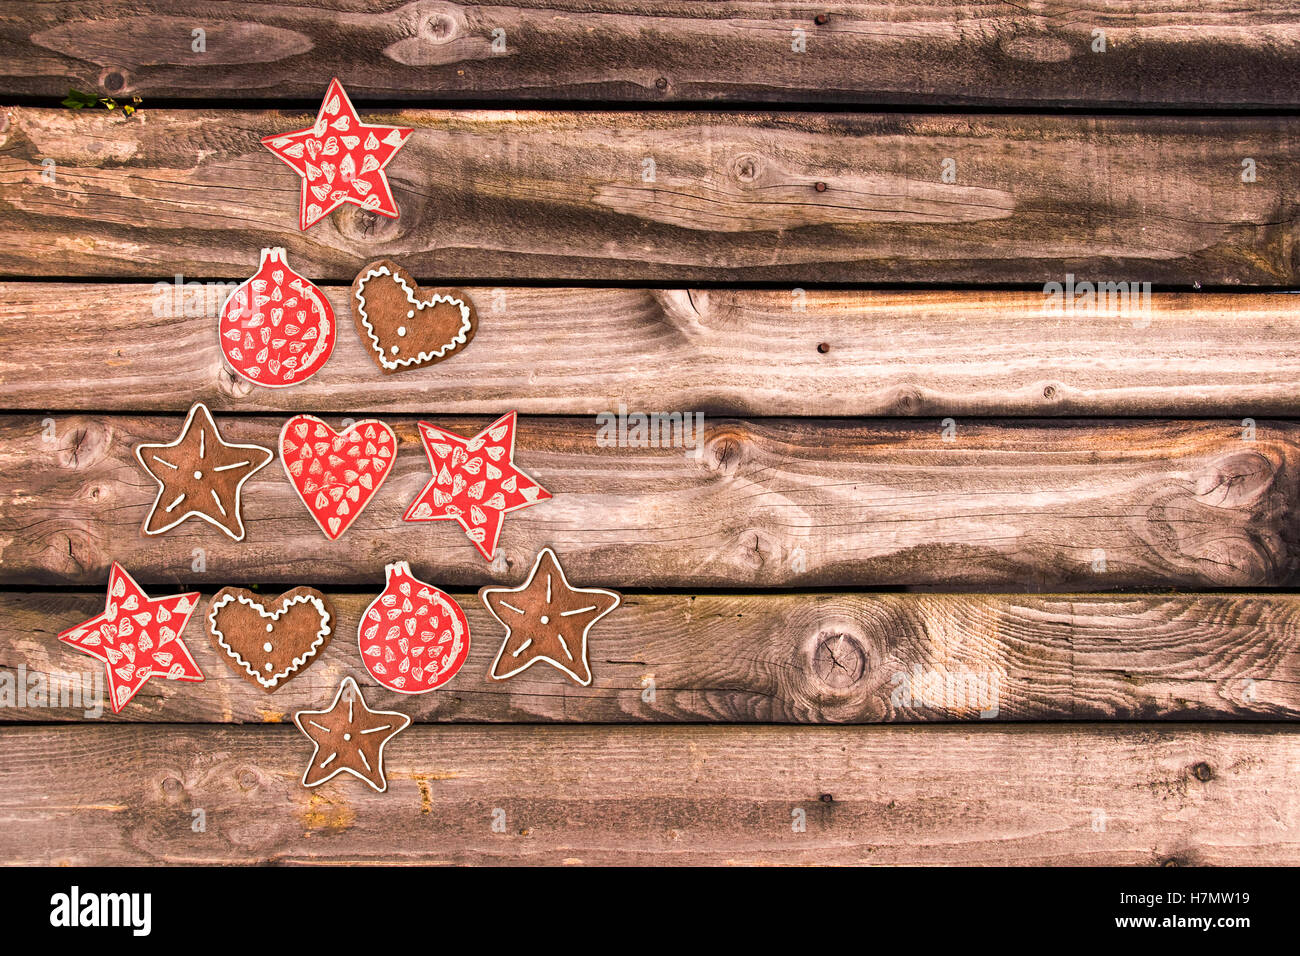 Christmas tree made of wooden rustic ornaments on wooden planks background - Stock Image